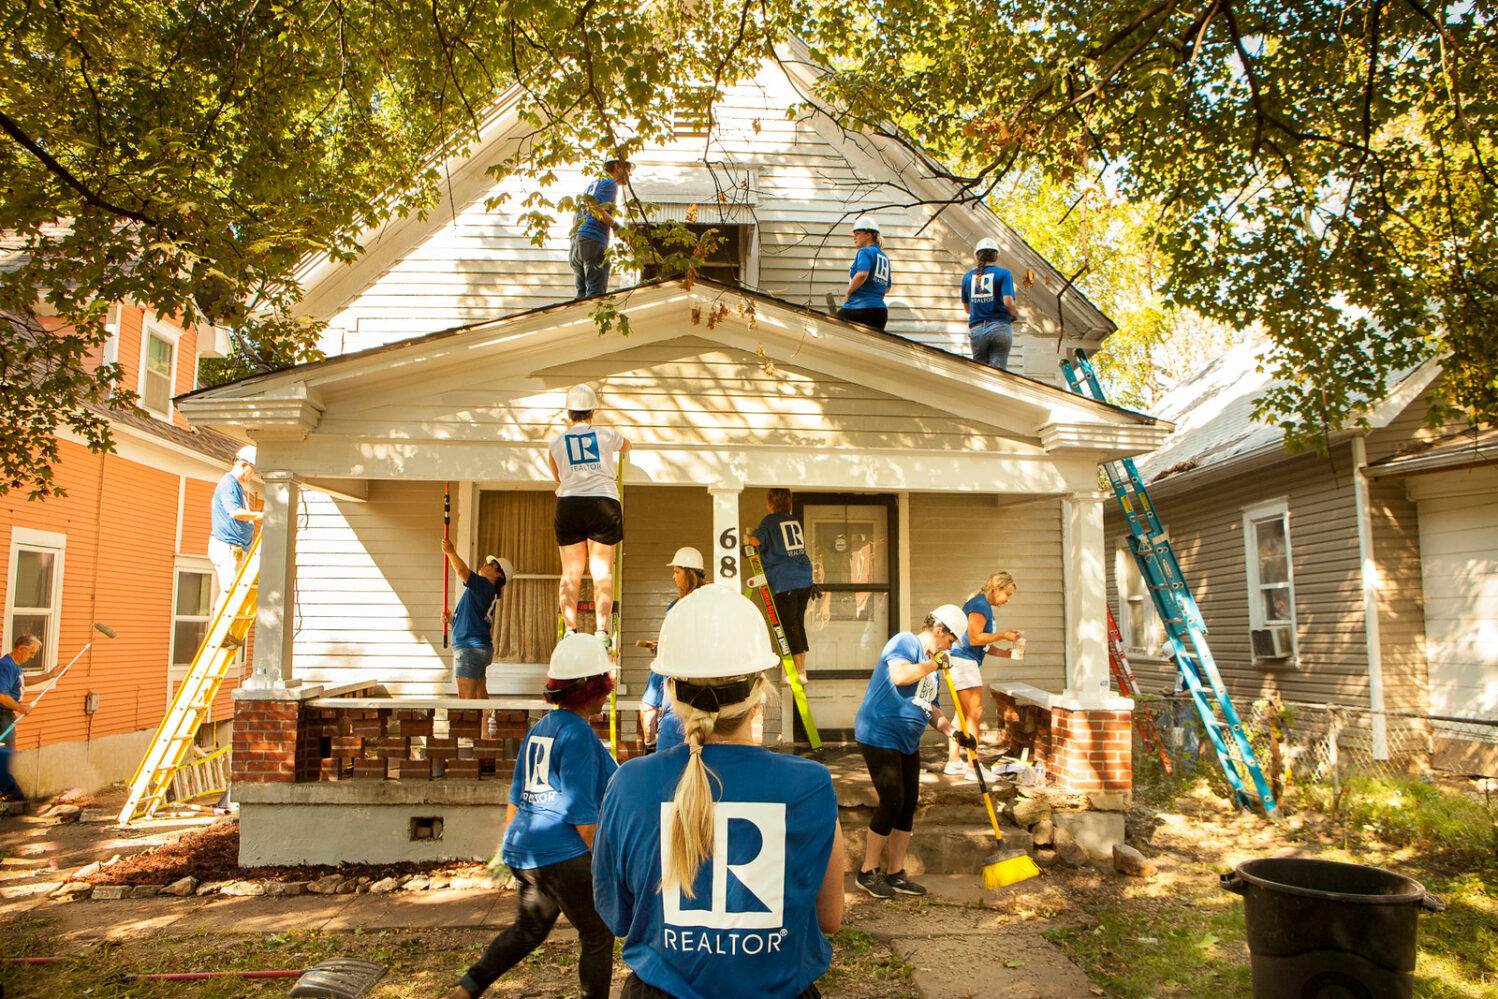 REALTORS working on a home at the 2019 REALTORS Rock the Block event.